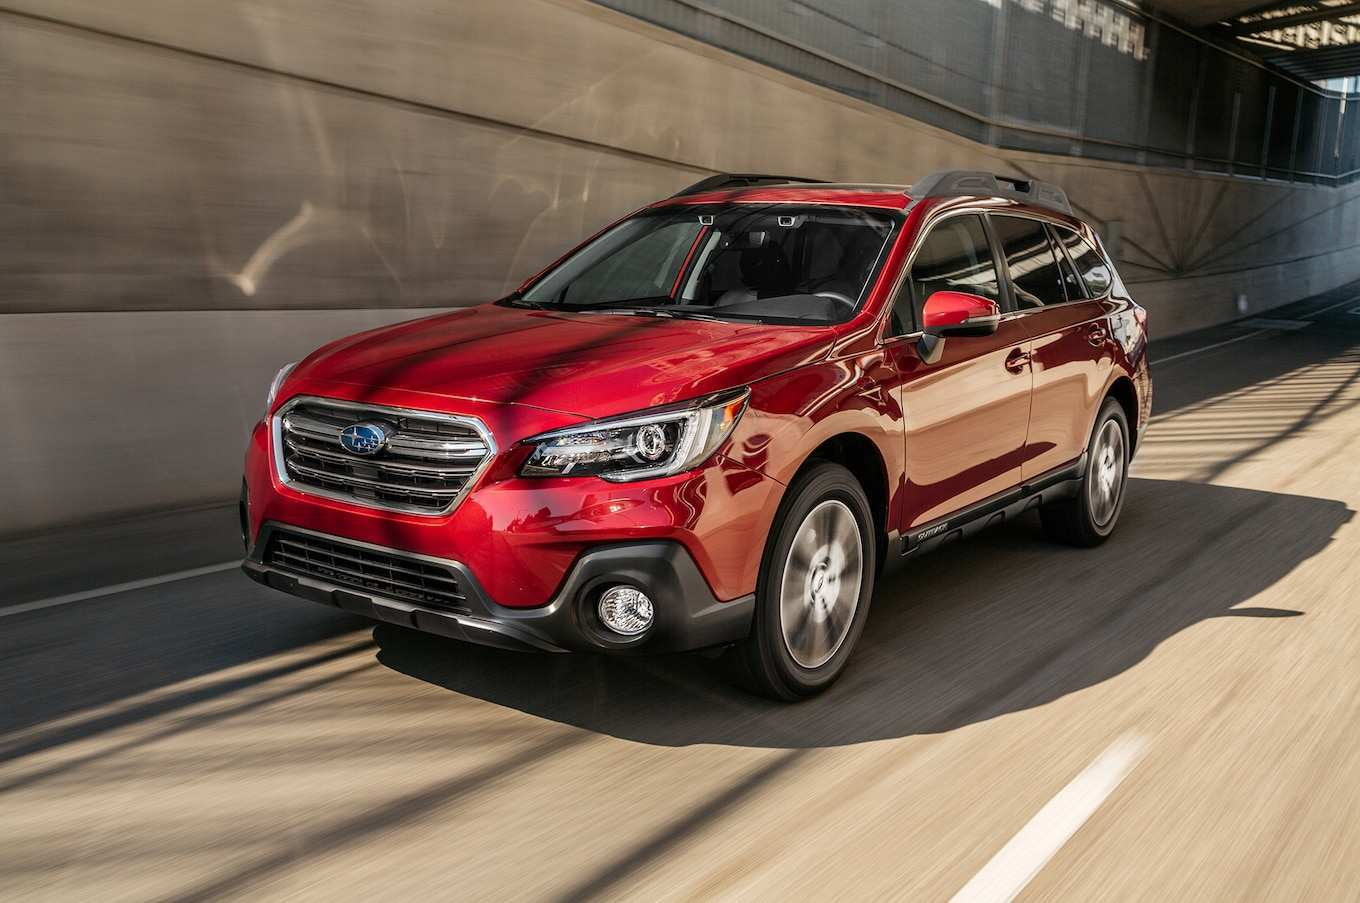 49 Best Review 2019 Subaru Outback Next Generation Specs with 2019 Subaru Outback Next Generation